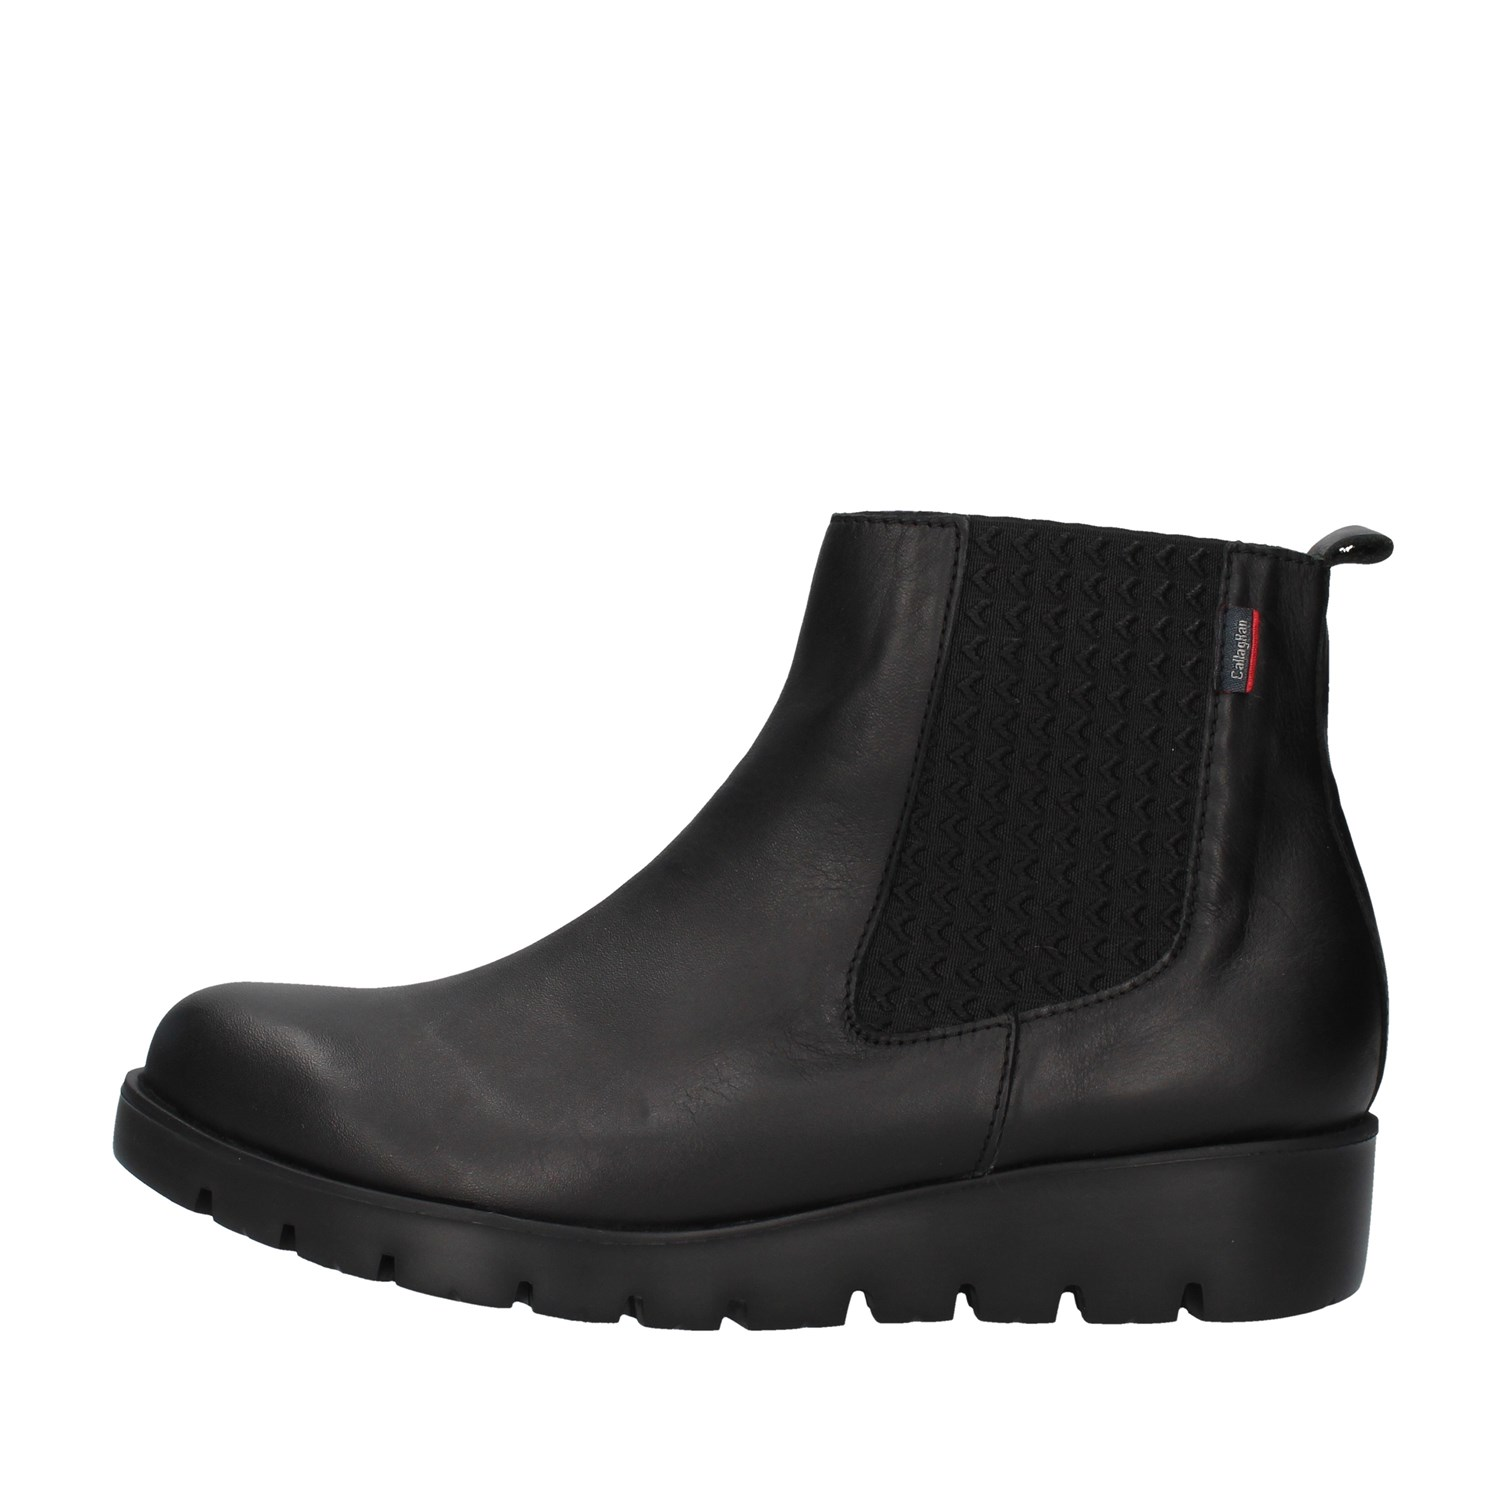 Callaghan Shoes Woman boots BLACK 89854